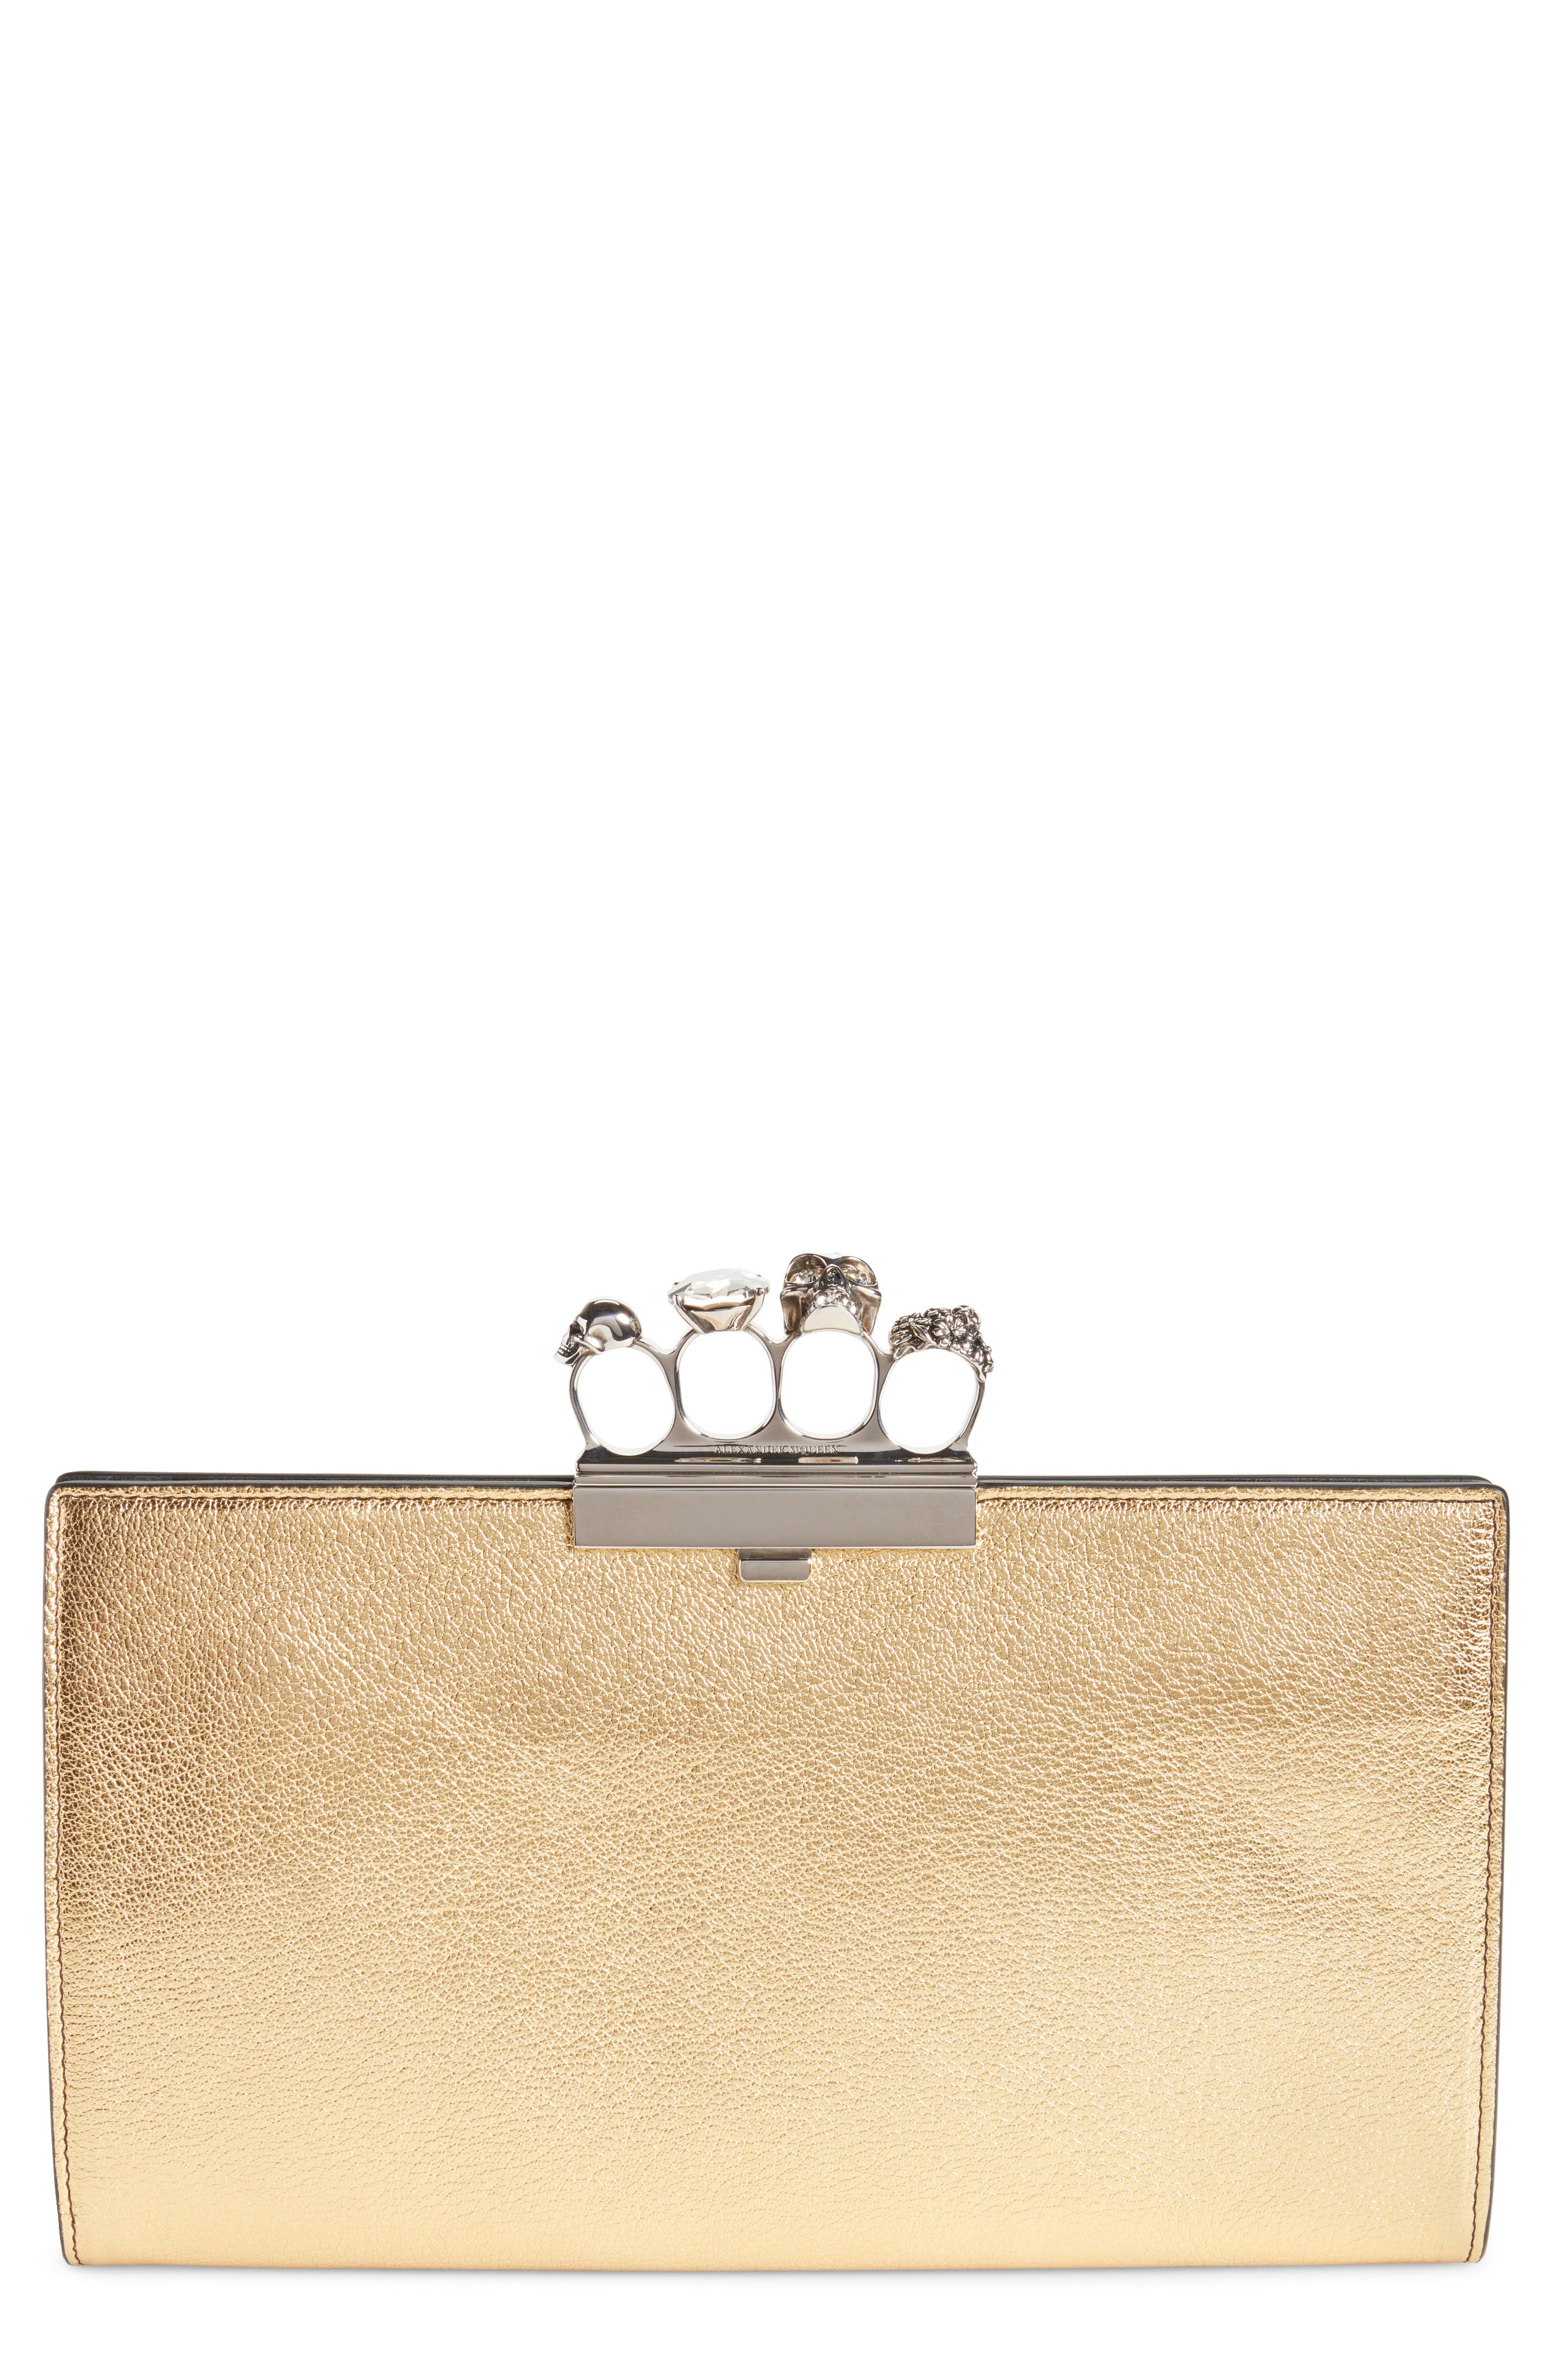 Main Image - Alexander McQueen Knuckle Clasp Metallic Leather Clutch